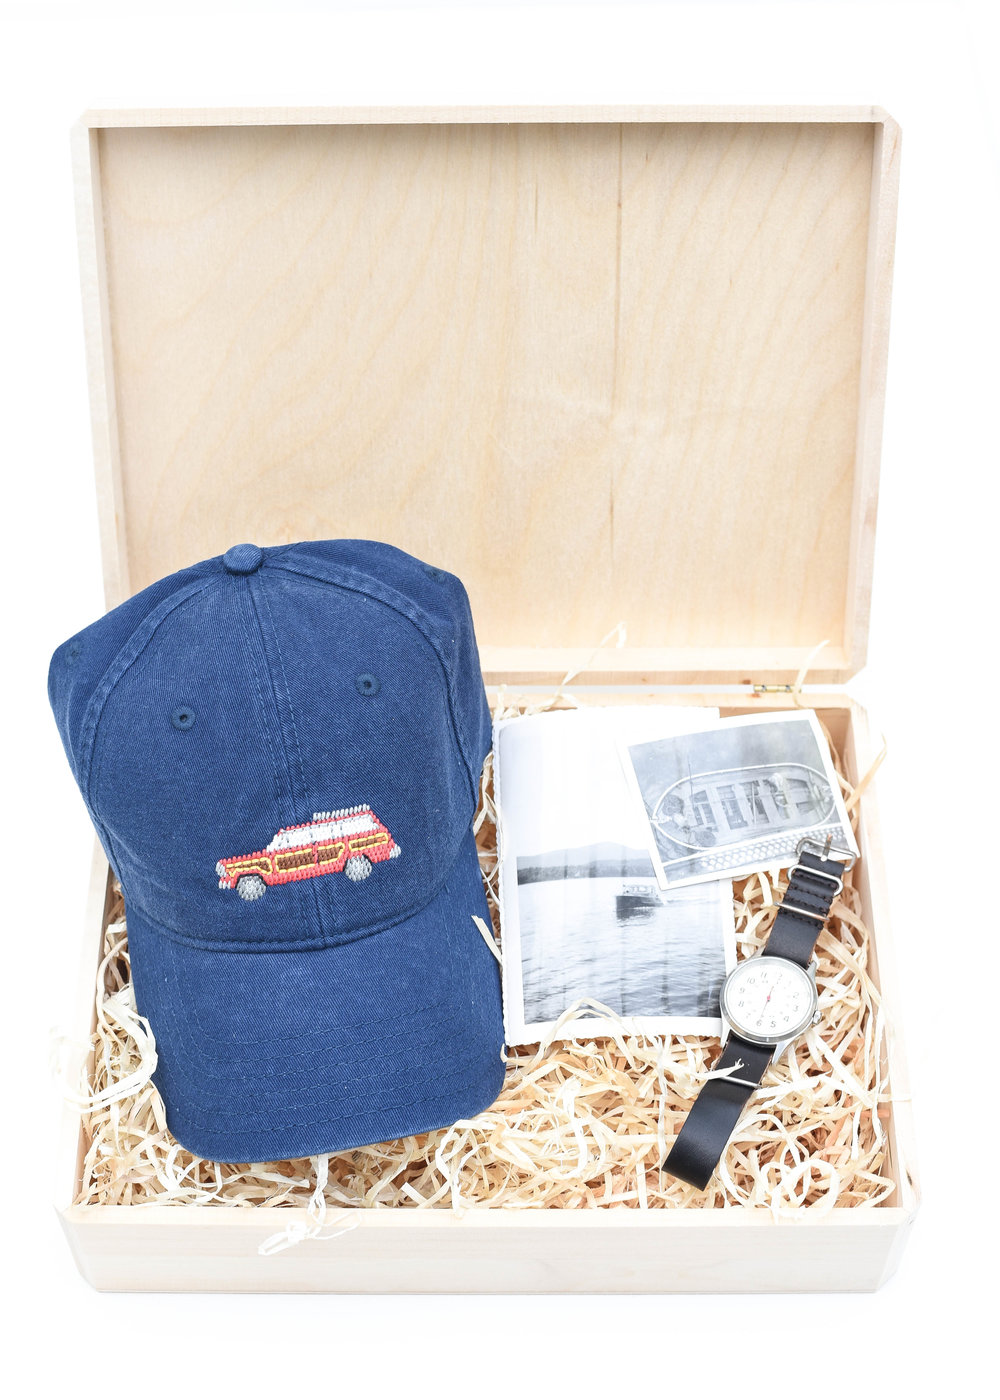 For Him | Classic Essentials - L:R | Needlepoint Baseball Hat | Wood Block With 12 Prints (not pictured, but a favorite of ours for just $20!) | Timex Weekender with Two Interchangeable Bands (item pictured older version)